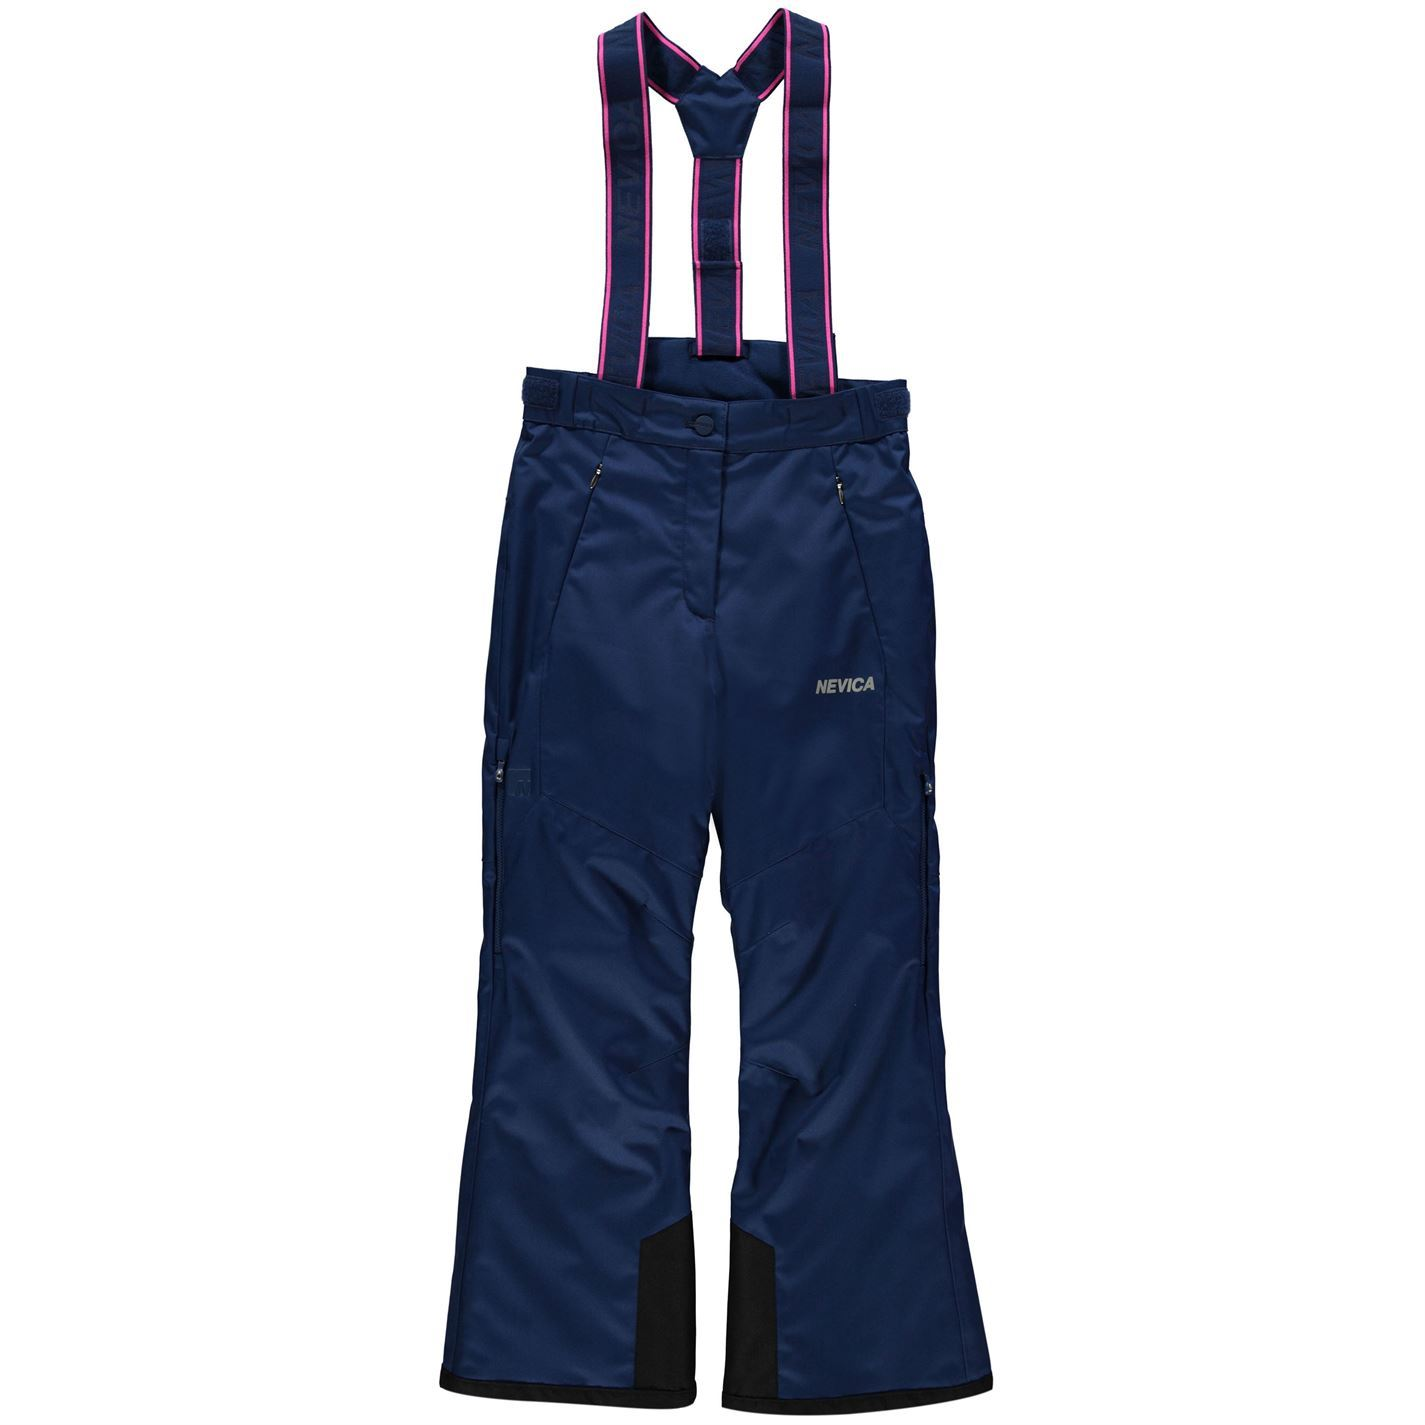 ... Nevica Vail Ski Pants Junior Girls Snow Salopettes Trousers 4a4ae78994d